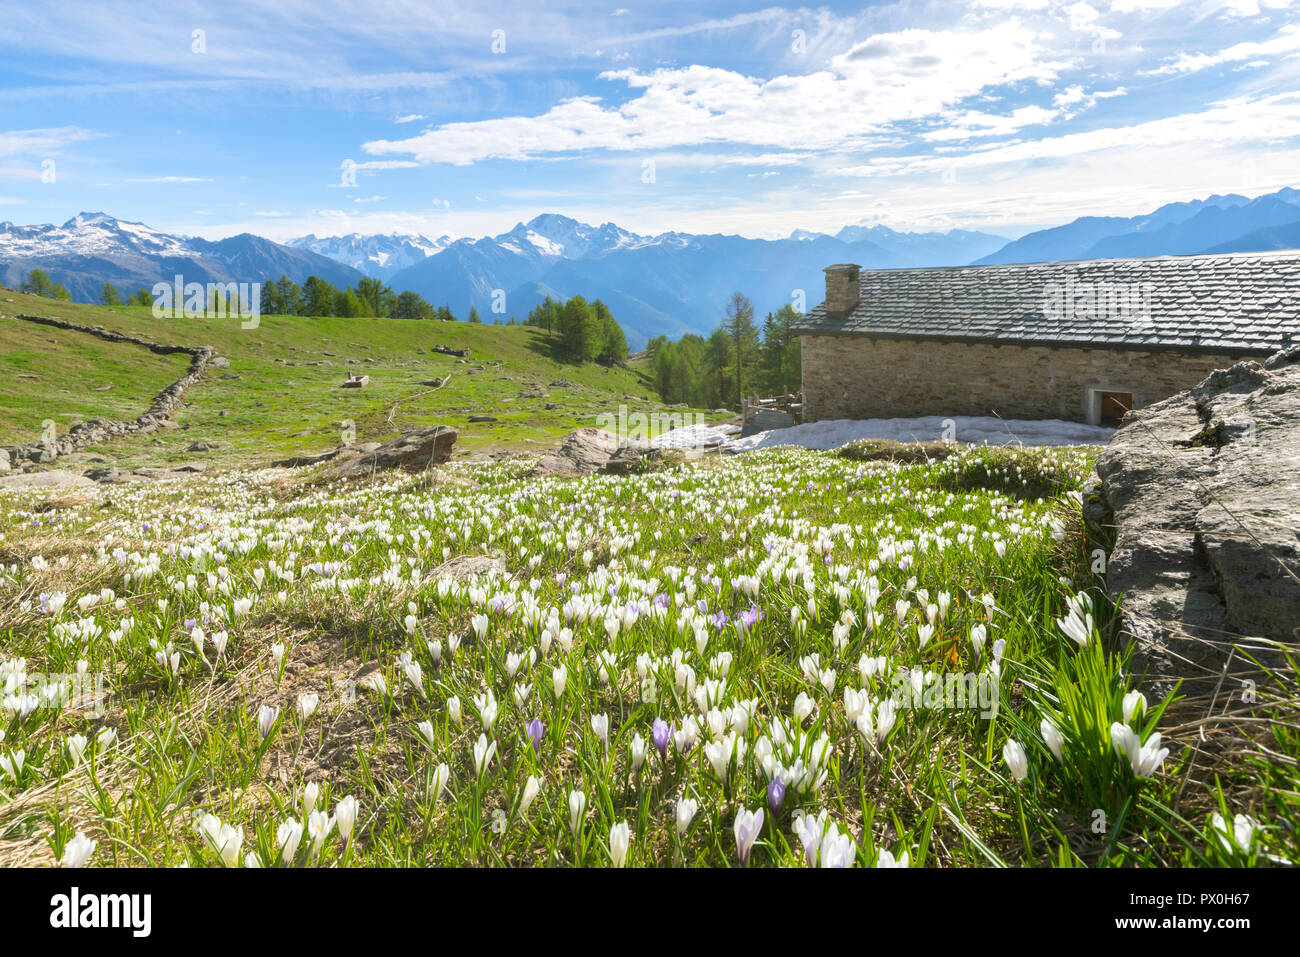 Stone hut surrounded by crocus flowers in bloom, Casera di Olano, Valgerola, Valtellina, Sondrio province, Lombardy, Italy - Stock Image